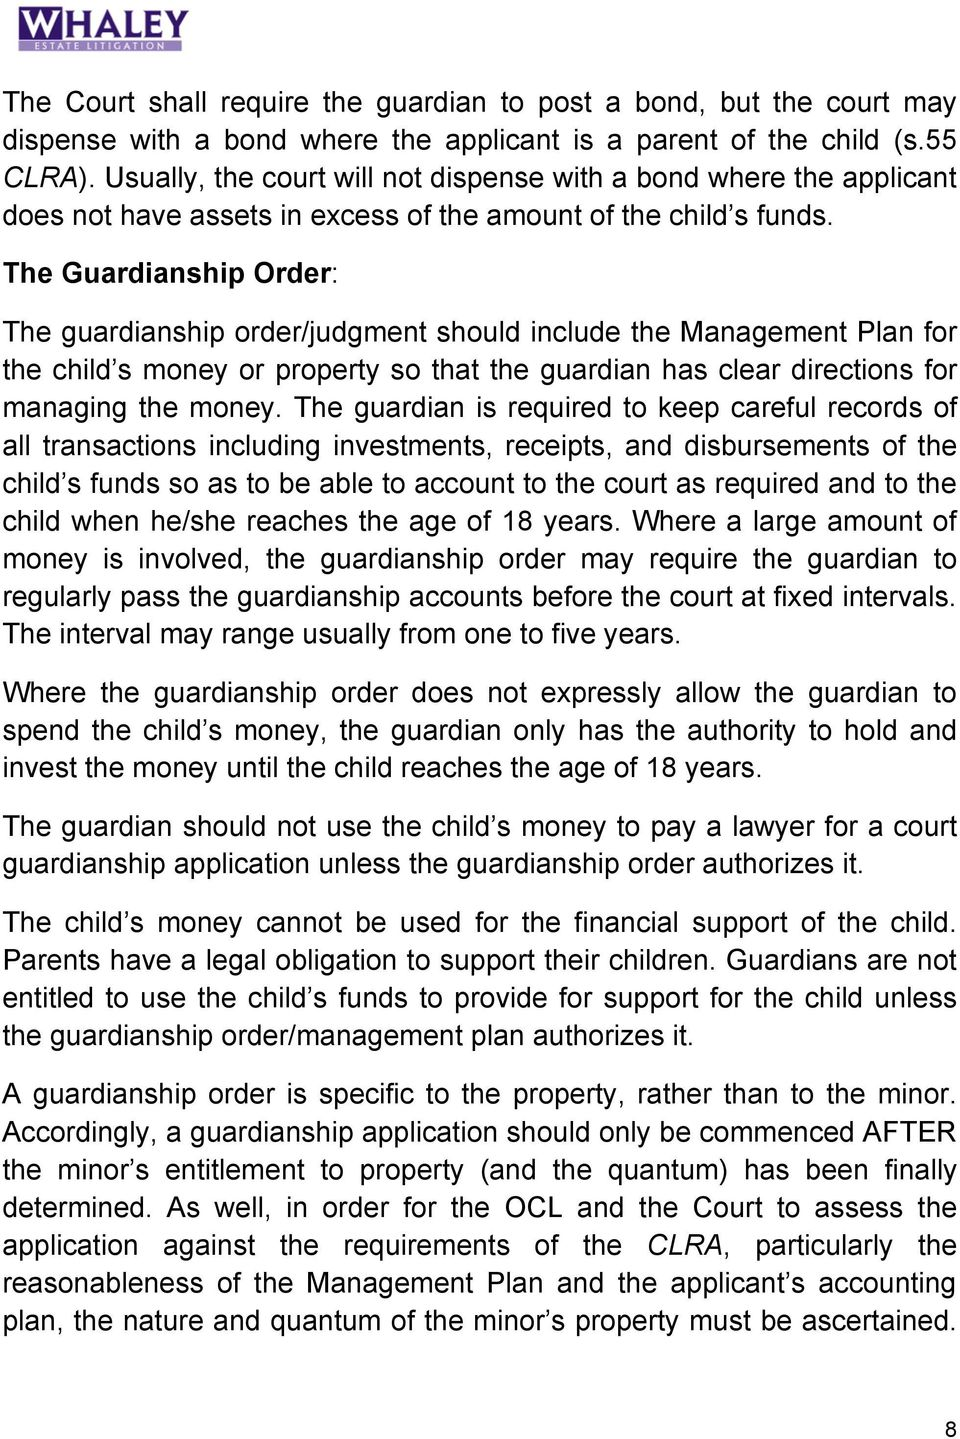 The Guardianship Order: The guardianship order/judgment should include the Management Plan for the child s money or property so that the guardian has clear directions for managing the money.